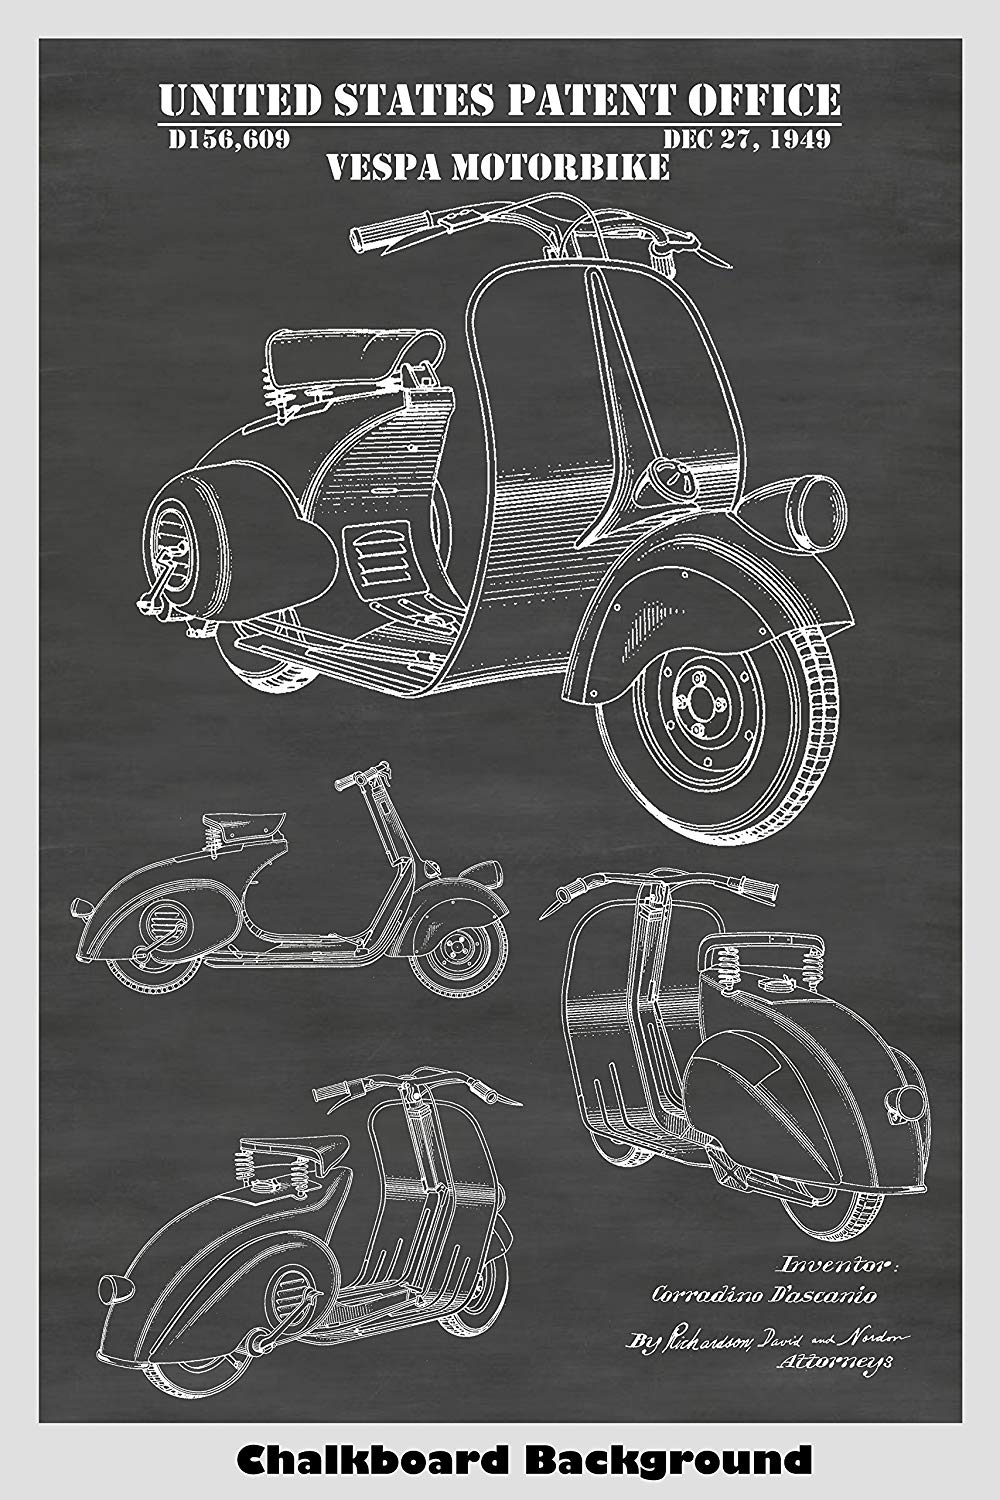 Vespa Scooter/Motor Bicycle Patent Print Art Poster